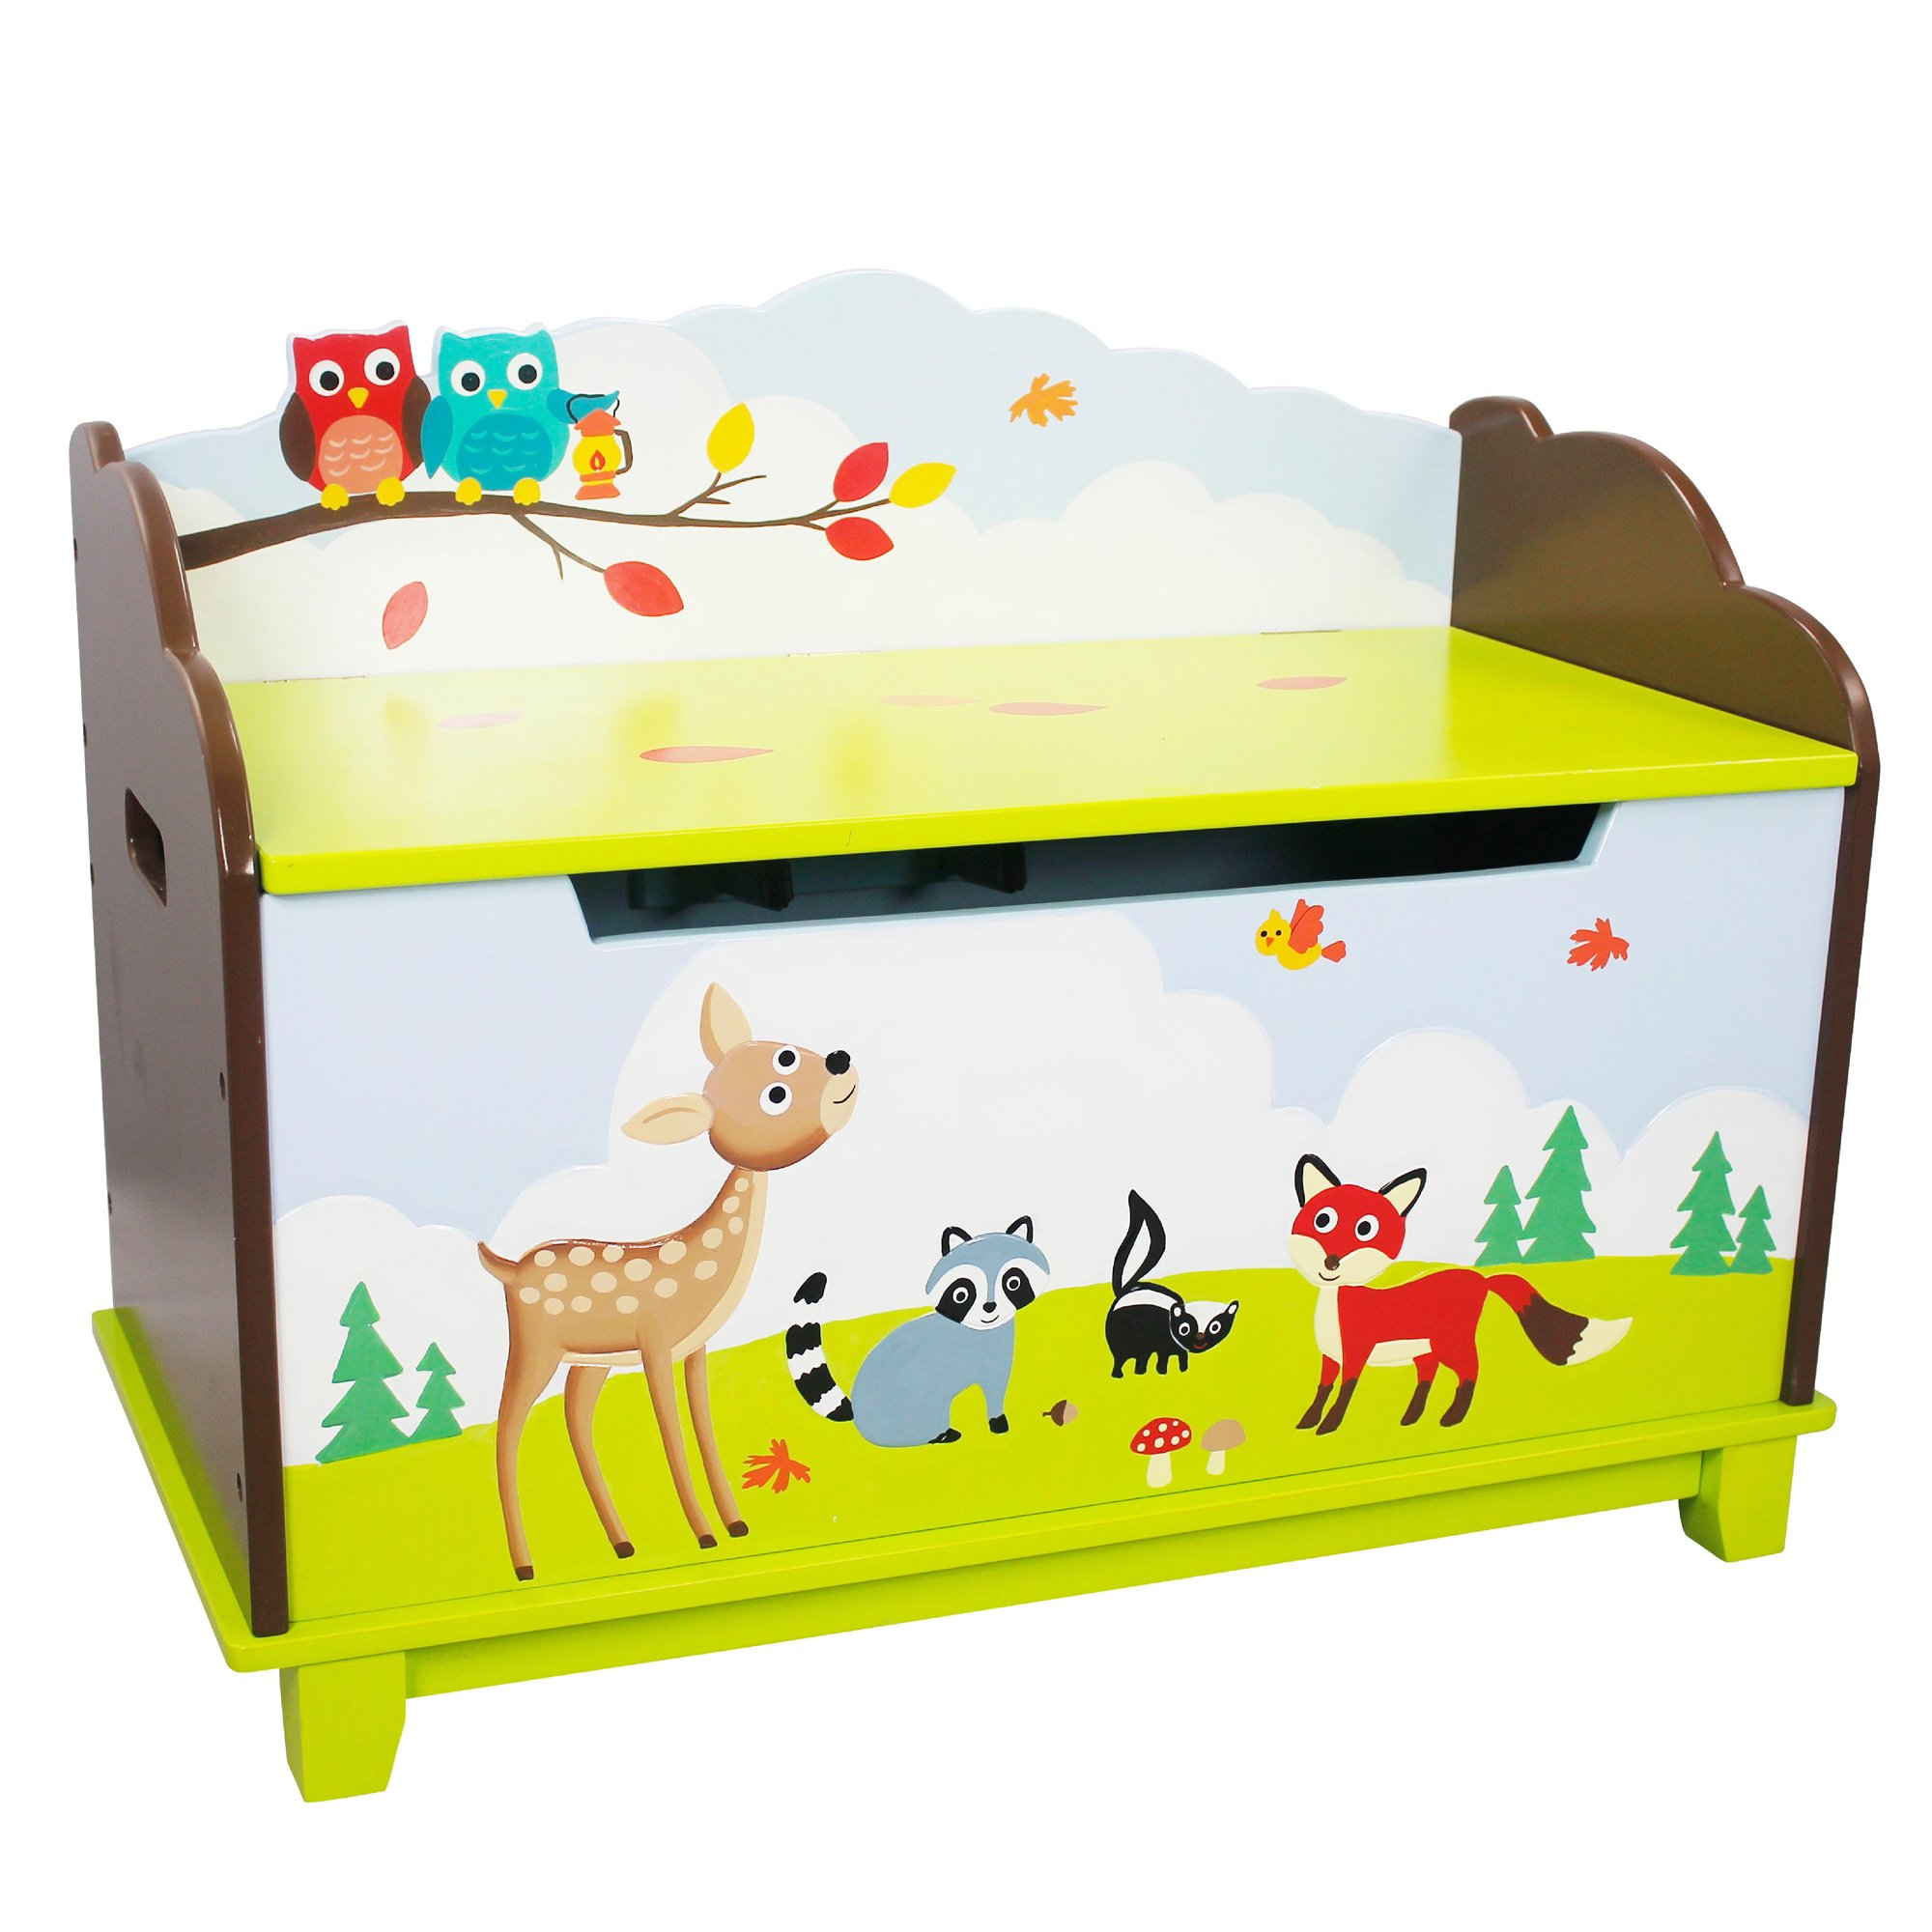 Fantasy Fields - Enchanted Woodland Thematic Kids Wooden Toy Chest with Safety Hinges | Imagination Inspiring Hand Crafted & Hand Painted Details | Non-Toxic, Lead Free Water-based Paint by Fantasy Fields